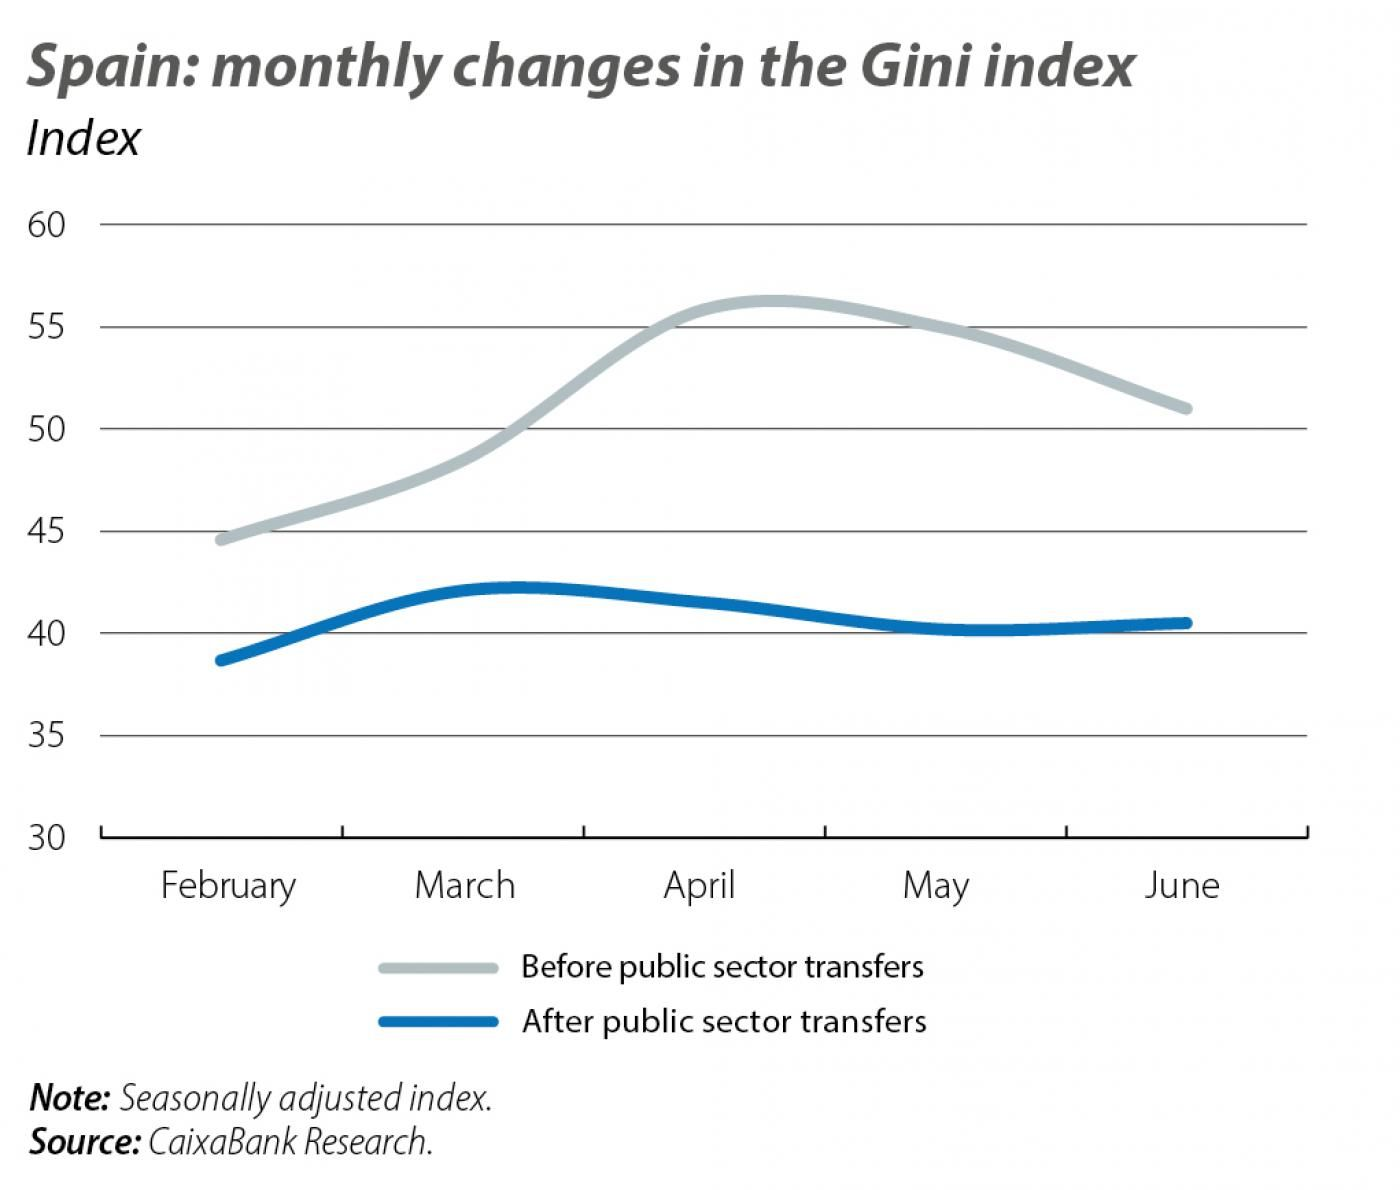 Spain: monthly changes in the Gini index